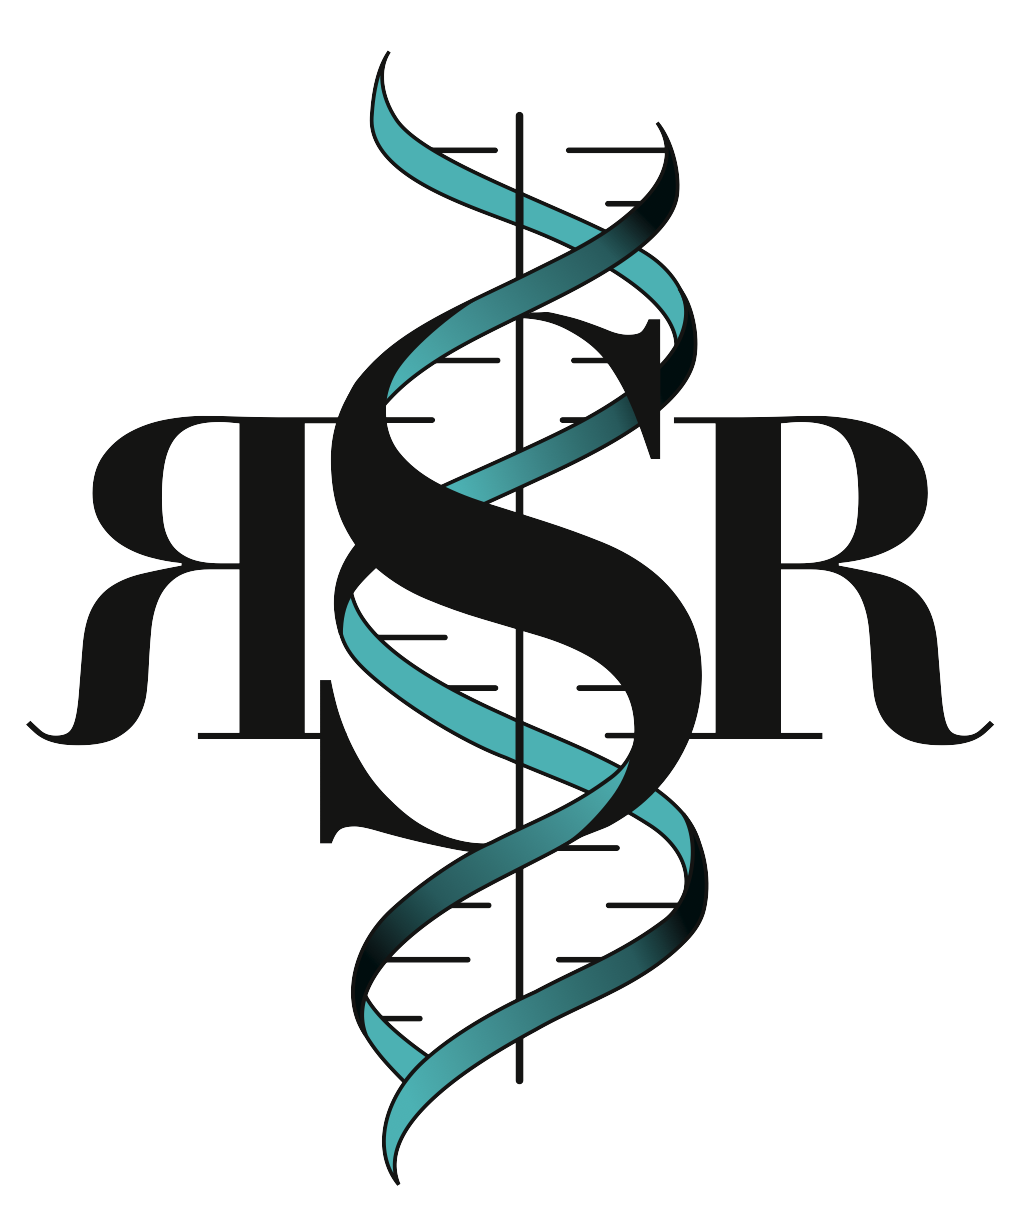 Real Science Radio logo DNA strand